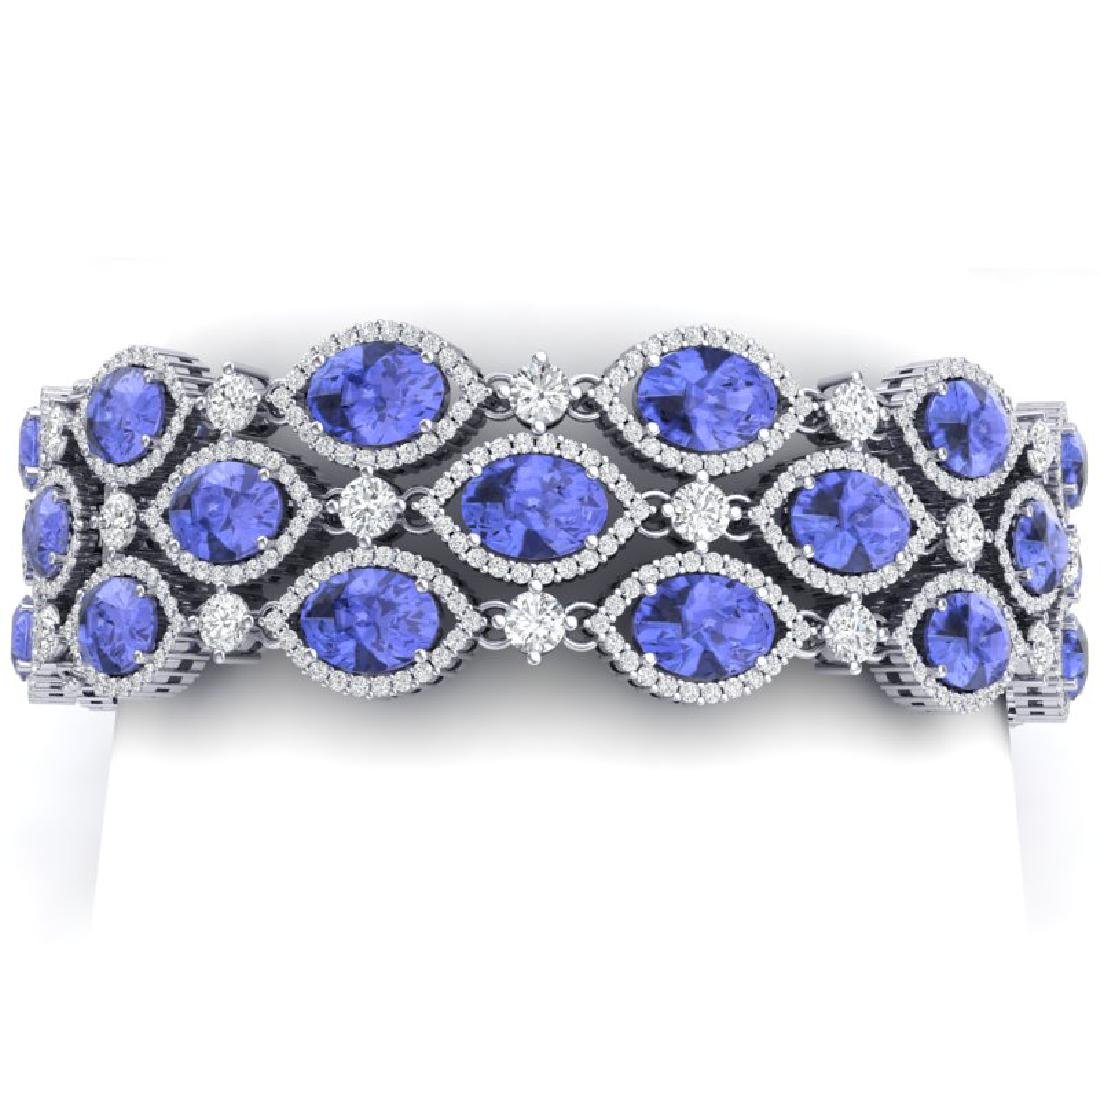 43.16 CTW Royalty Tanzanite & VS Diamond Bracelet 18K